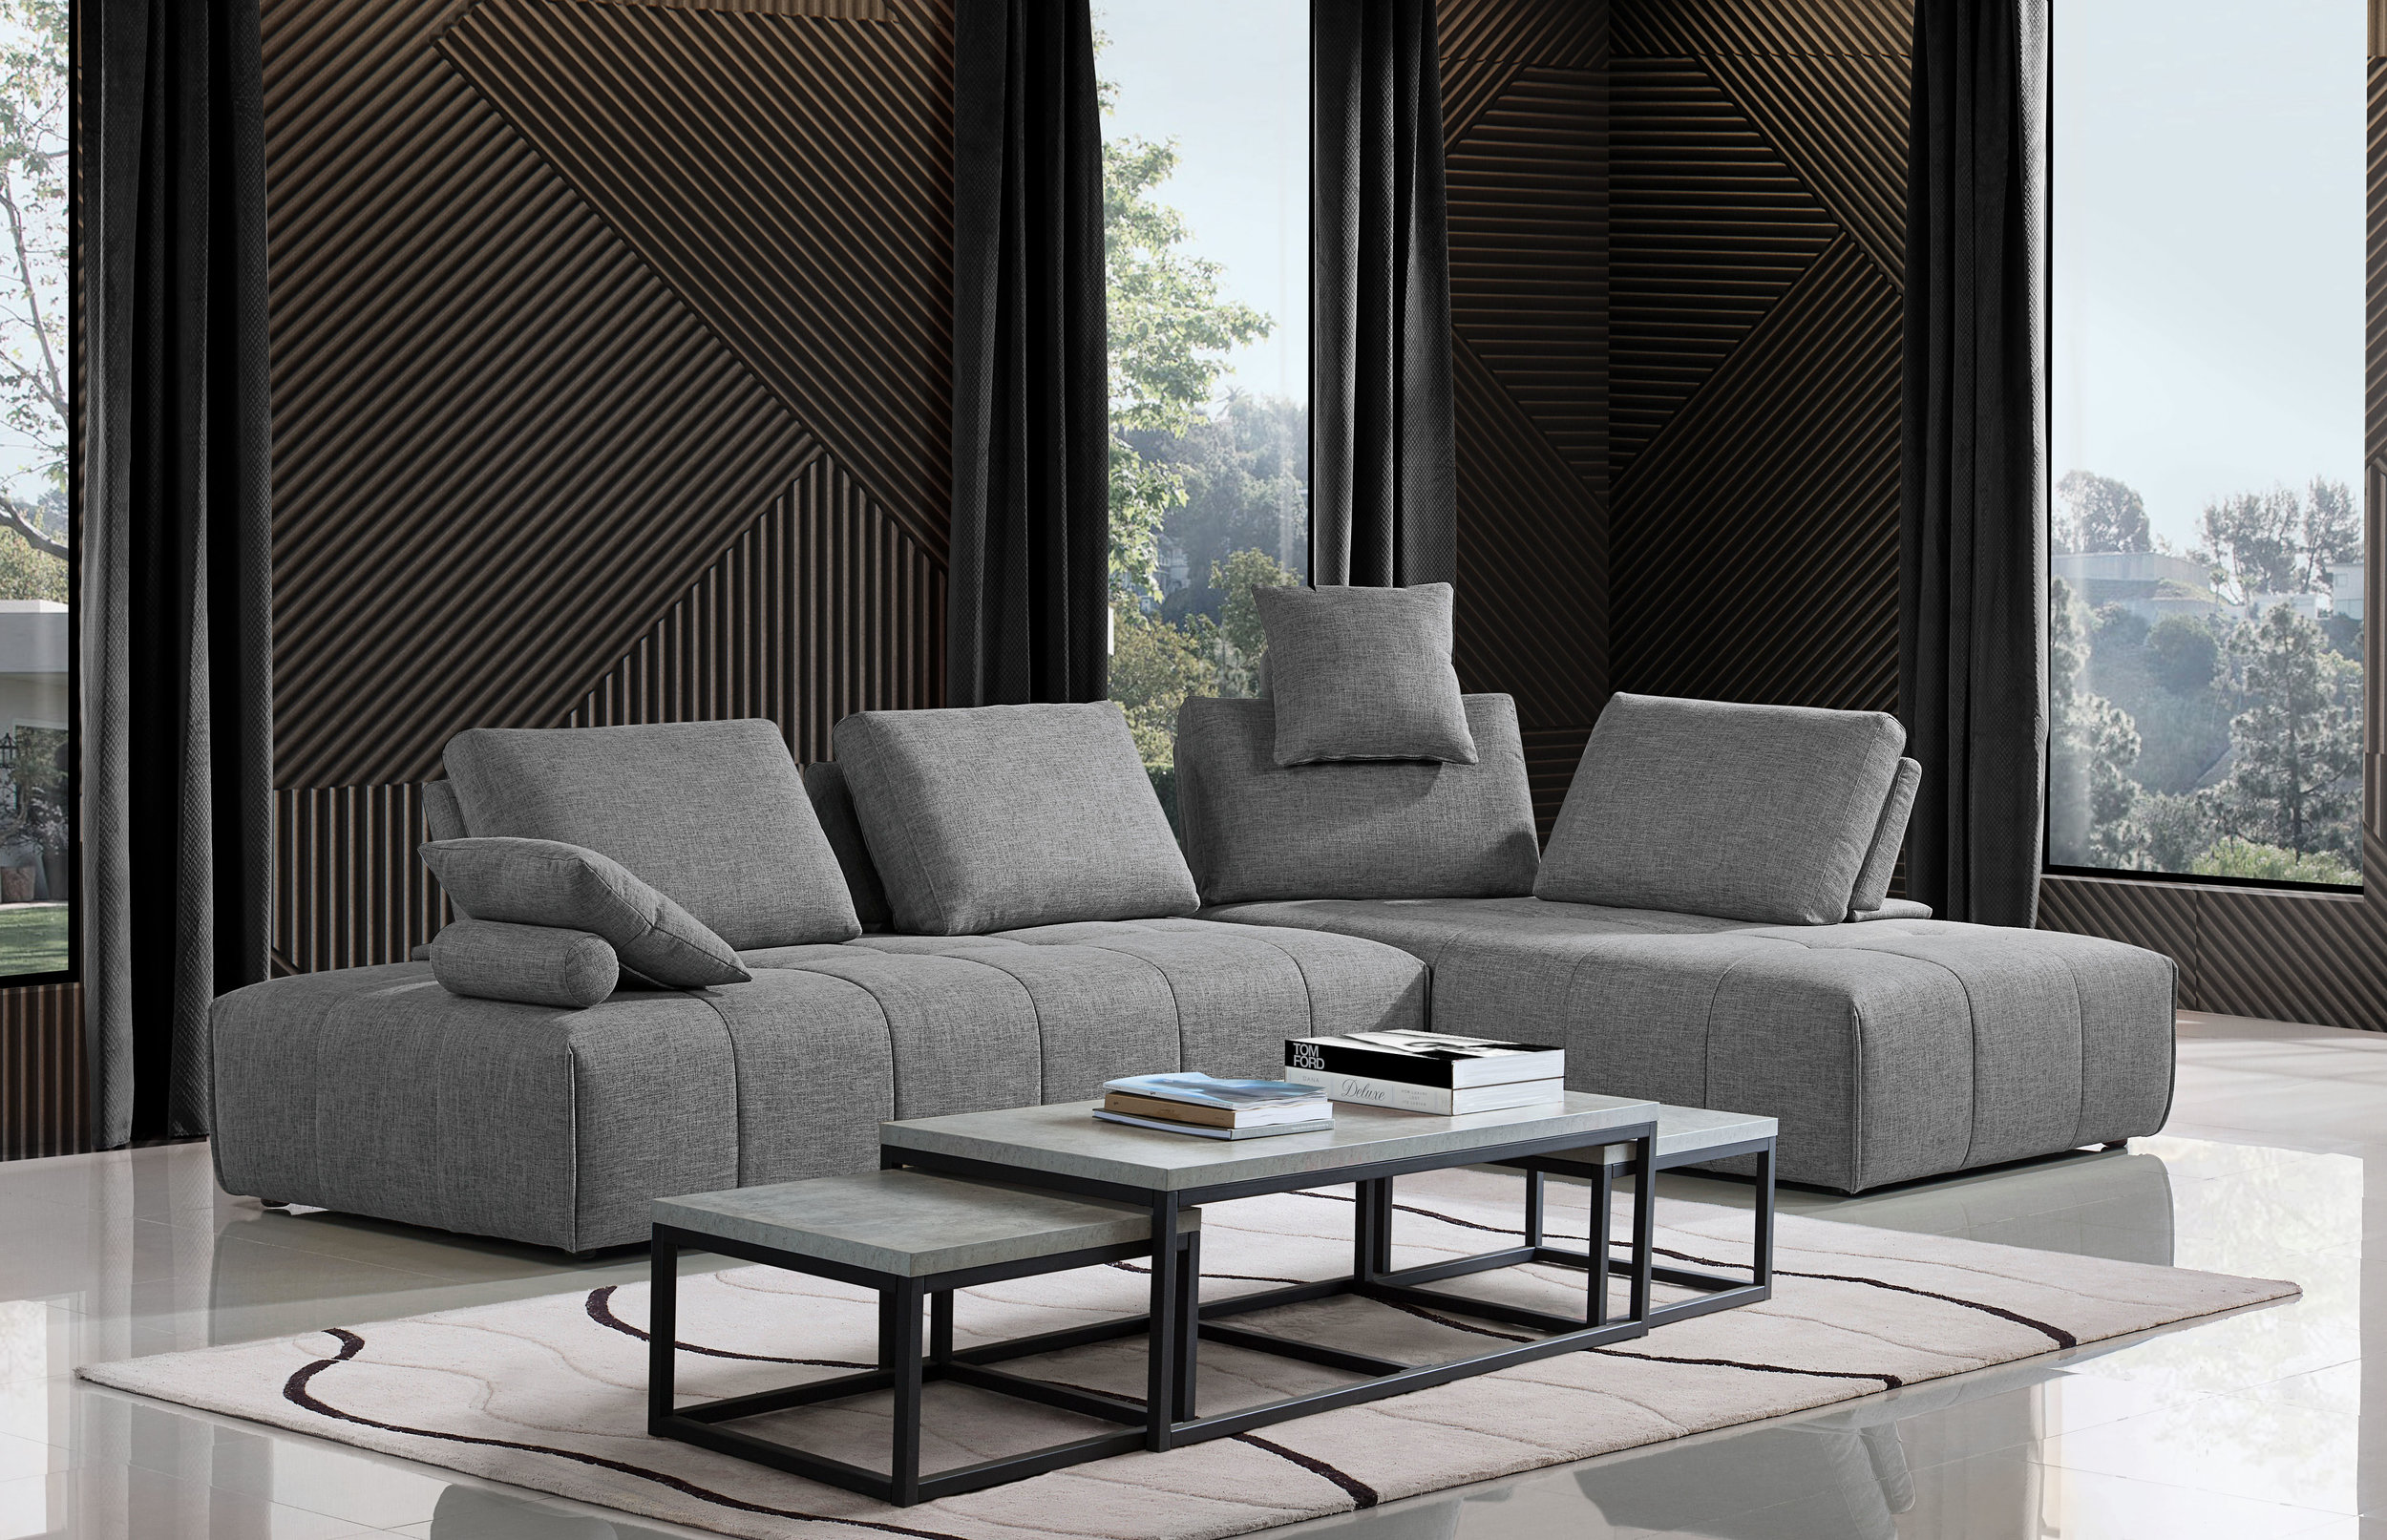 2 Lounger Configuration, shown with Atlus 3 piece nesting tables